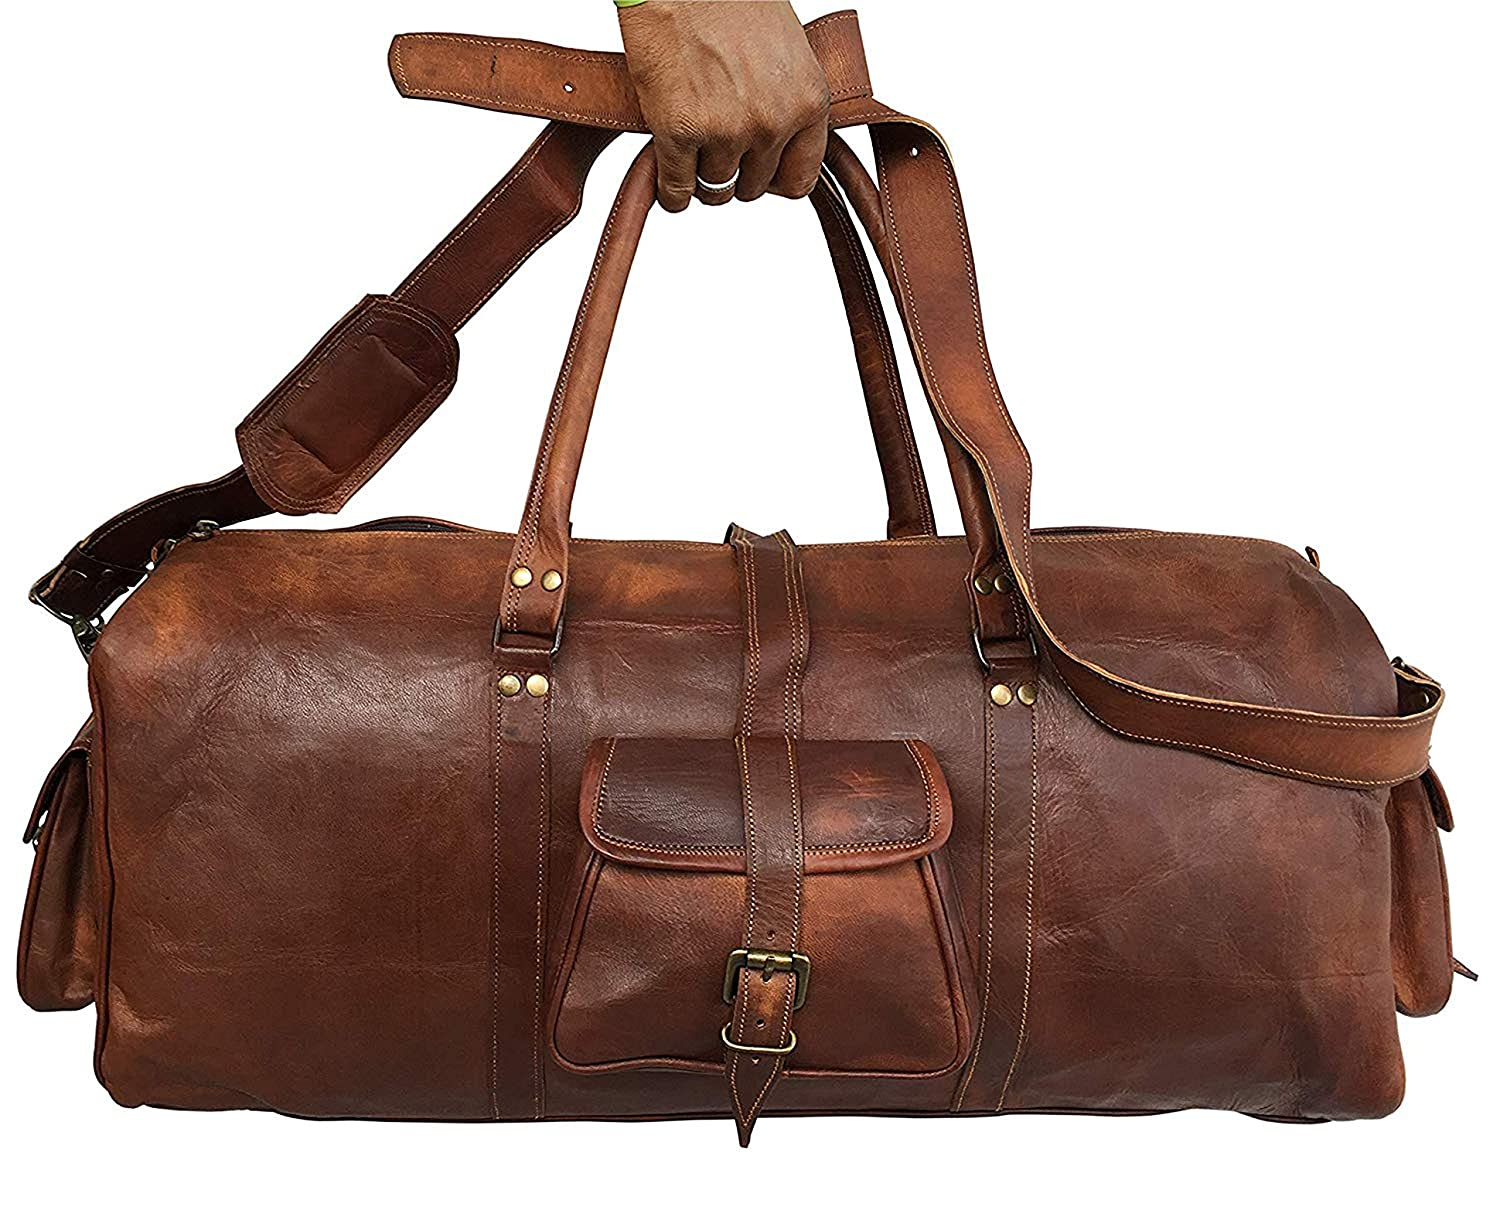 24 Inch leather duffel bag for men and women